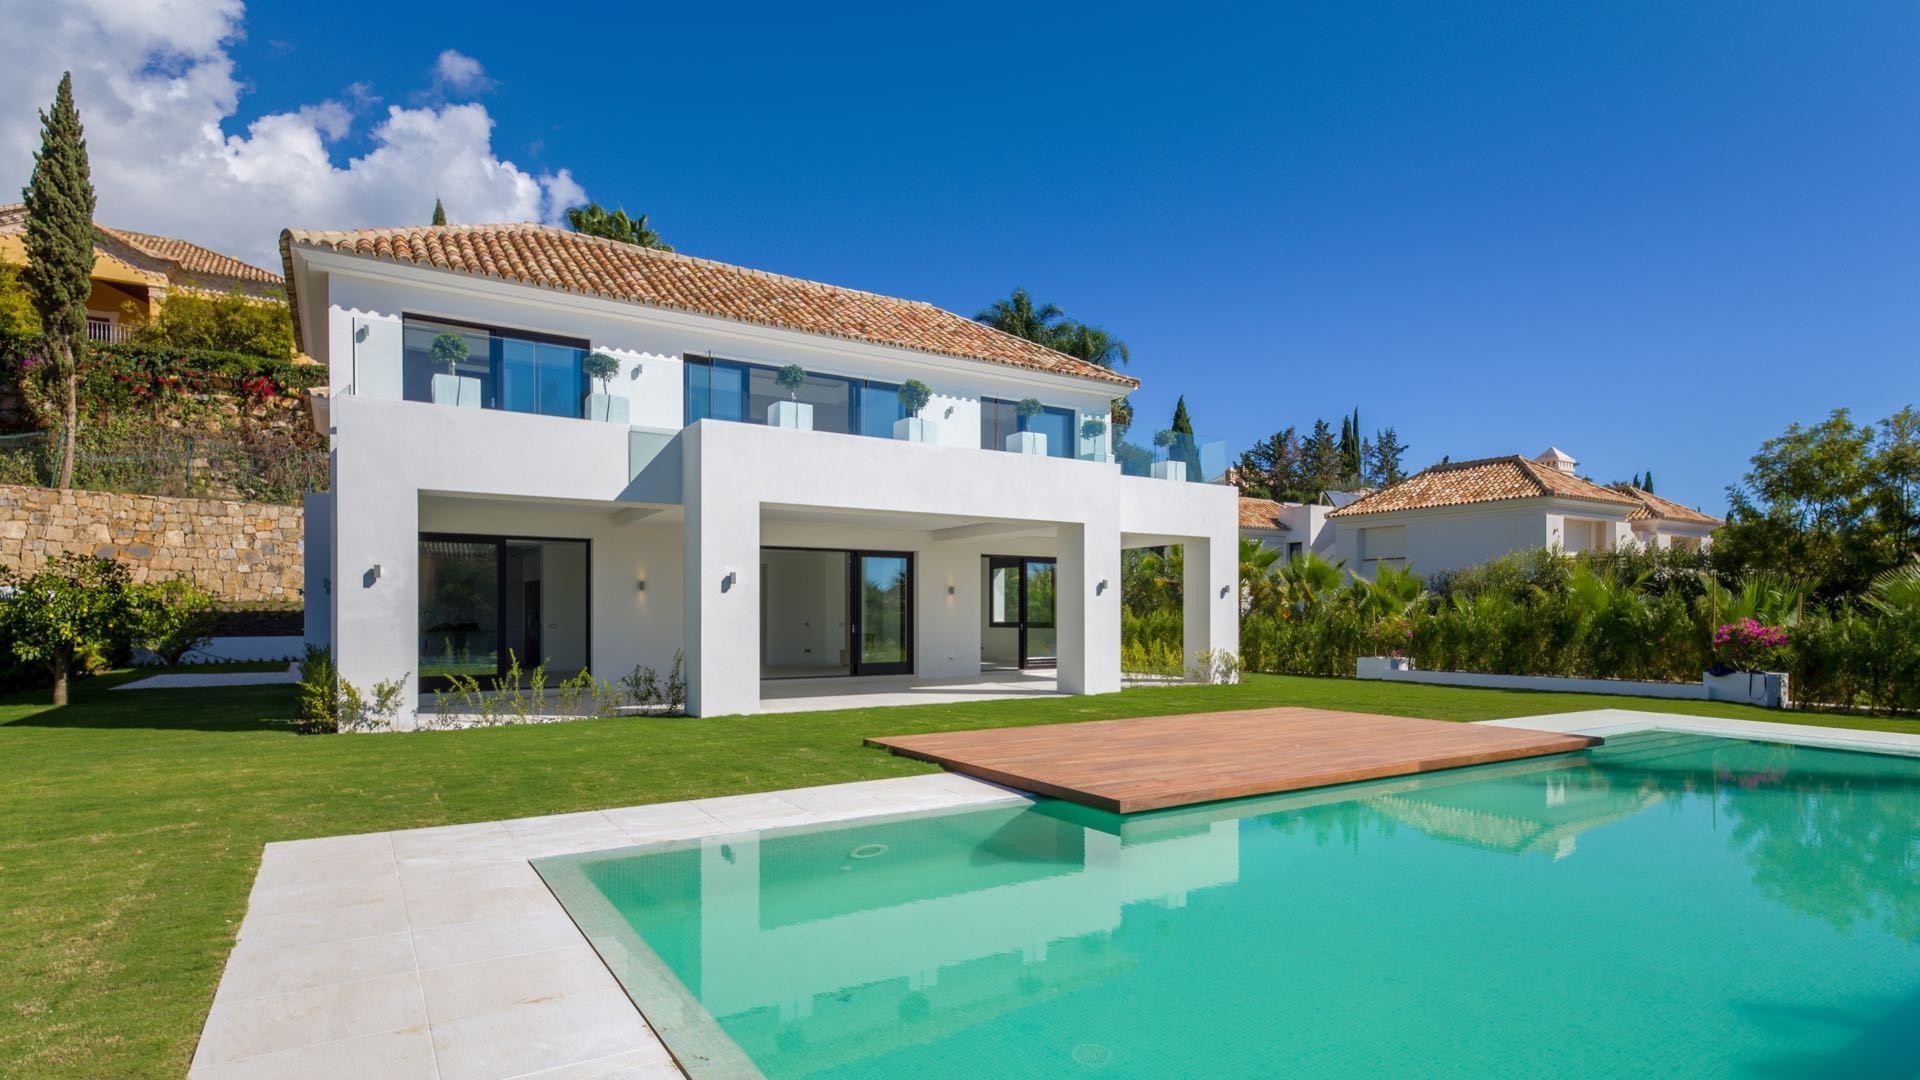 Marbella second home rich famous